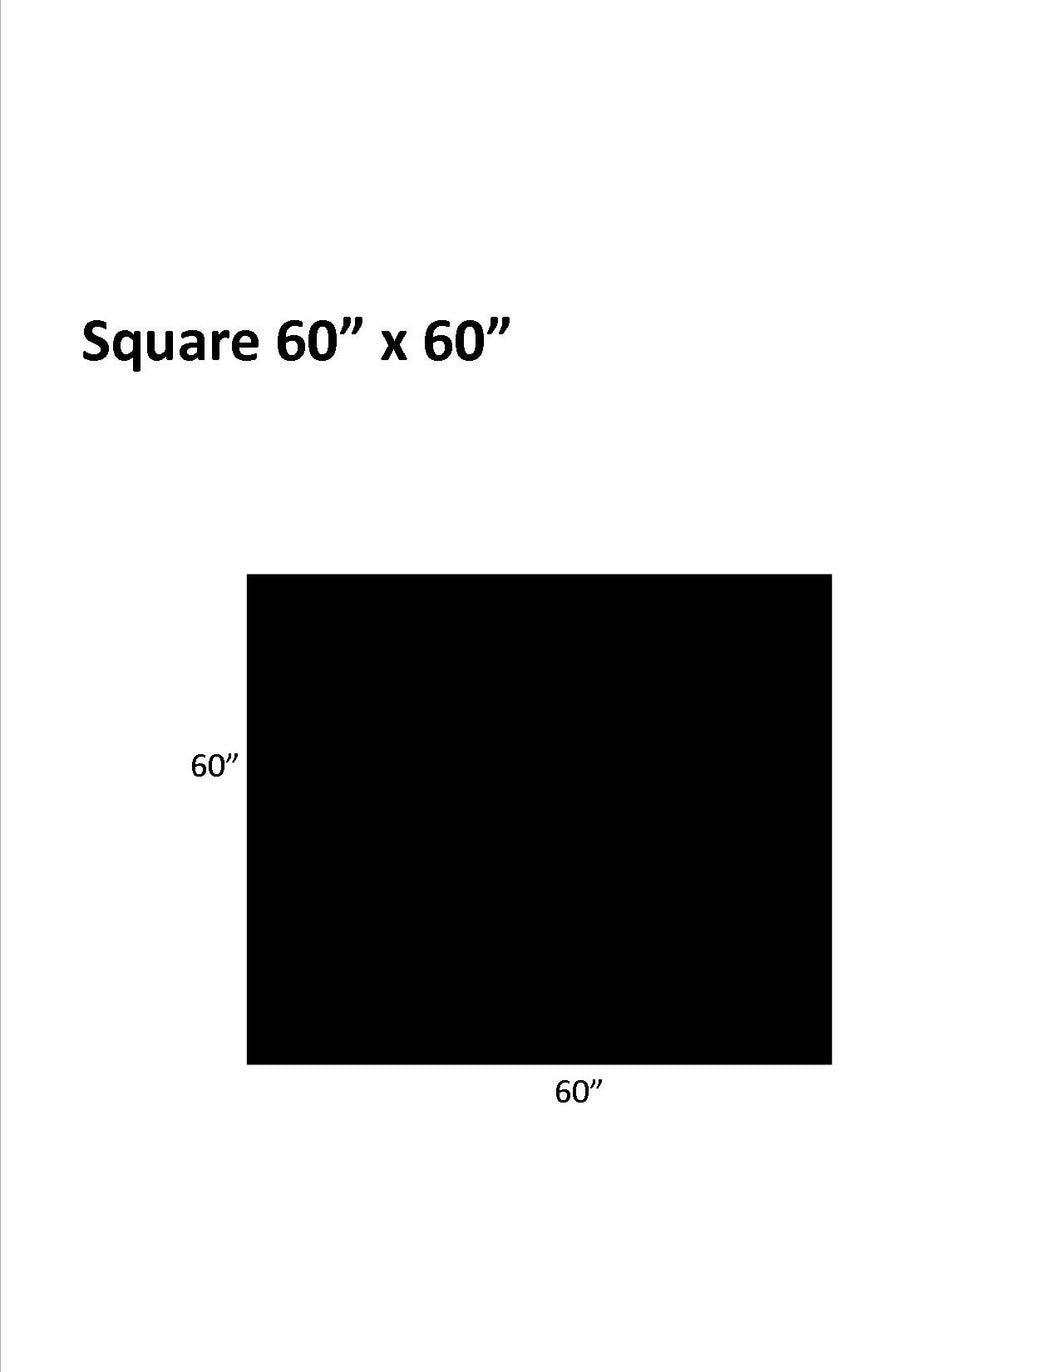 Hard Surfaces (Black): 60 x 60 Square .110